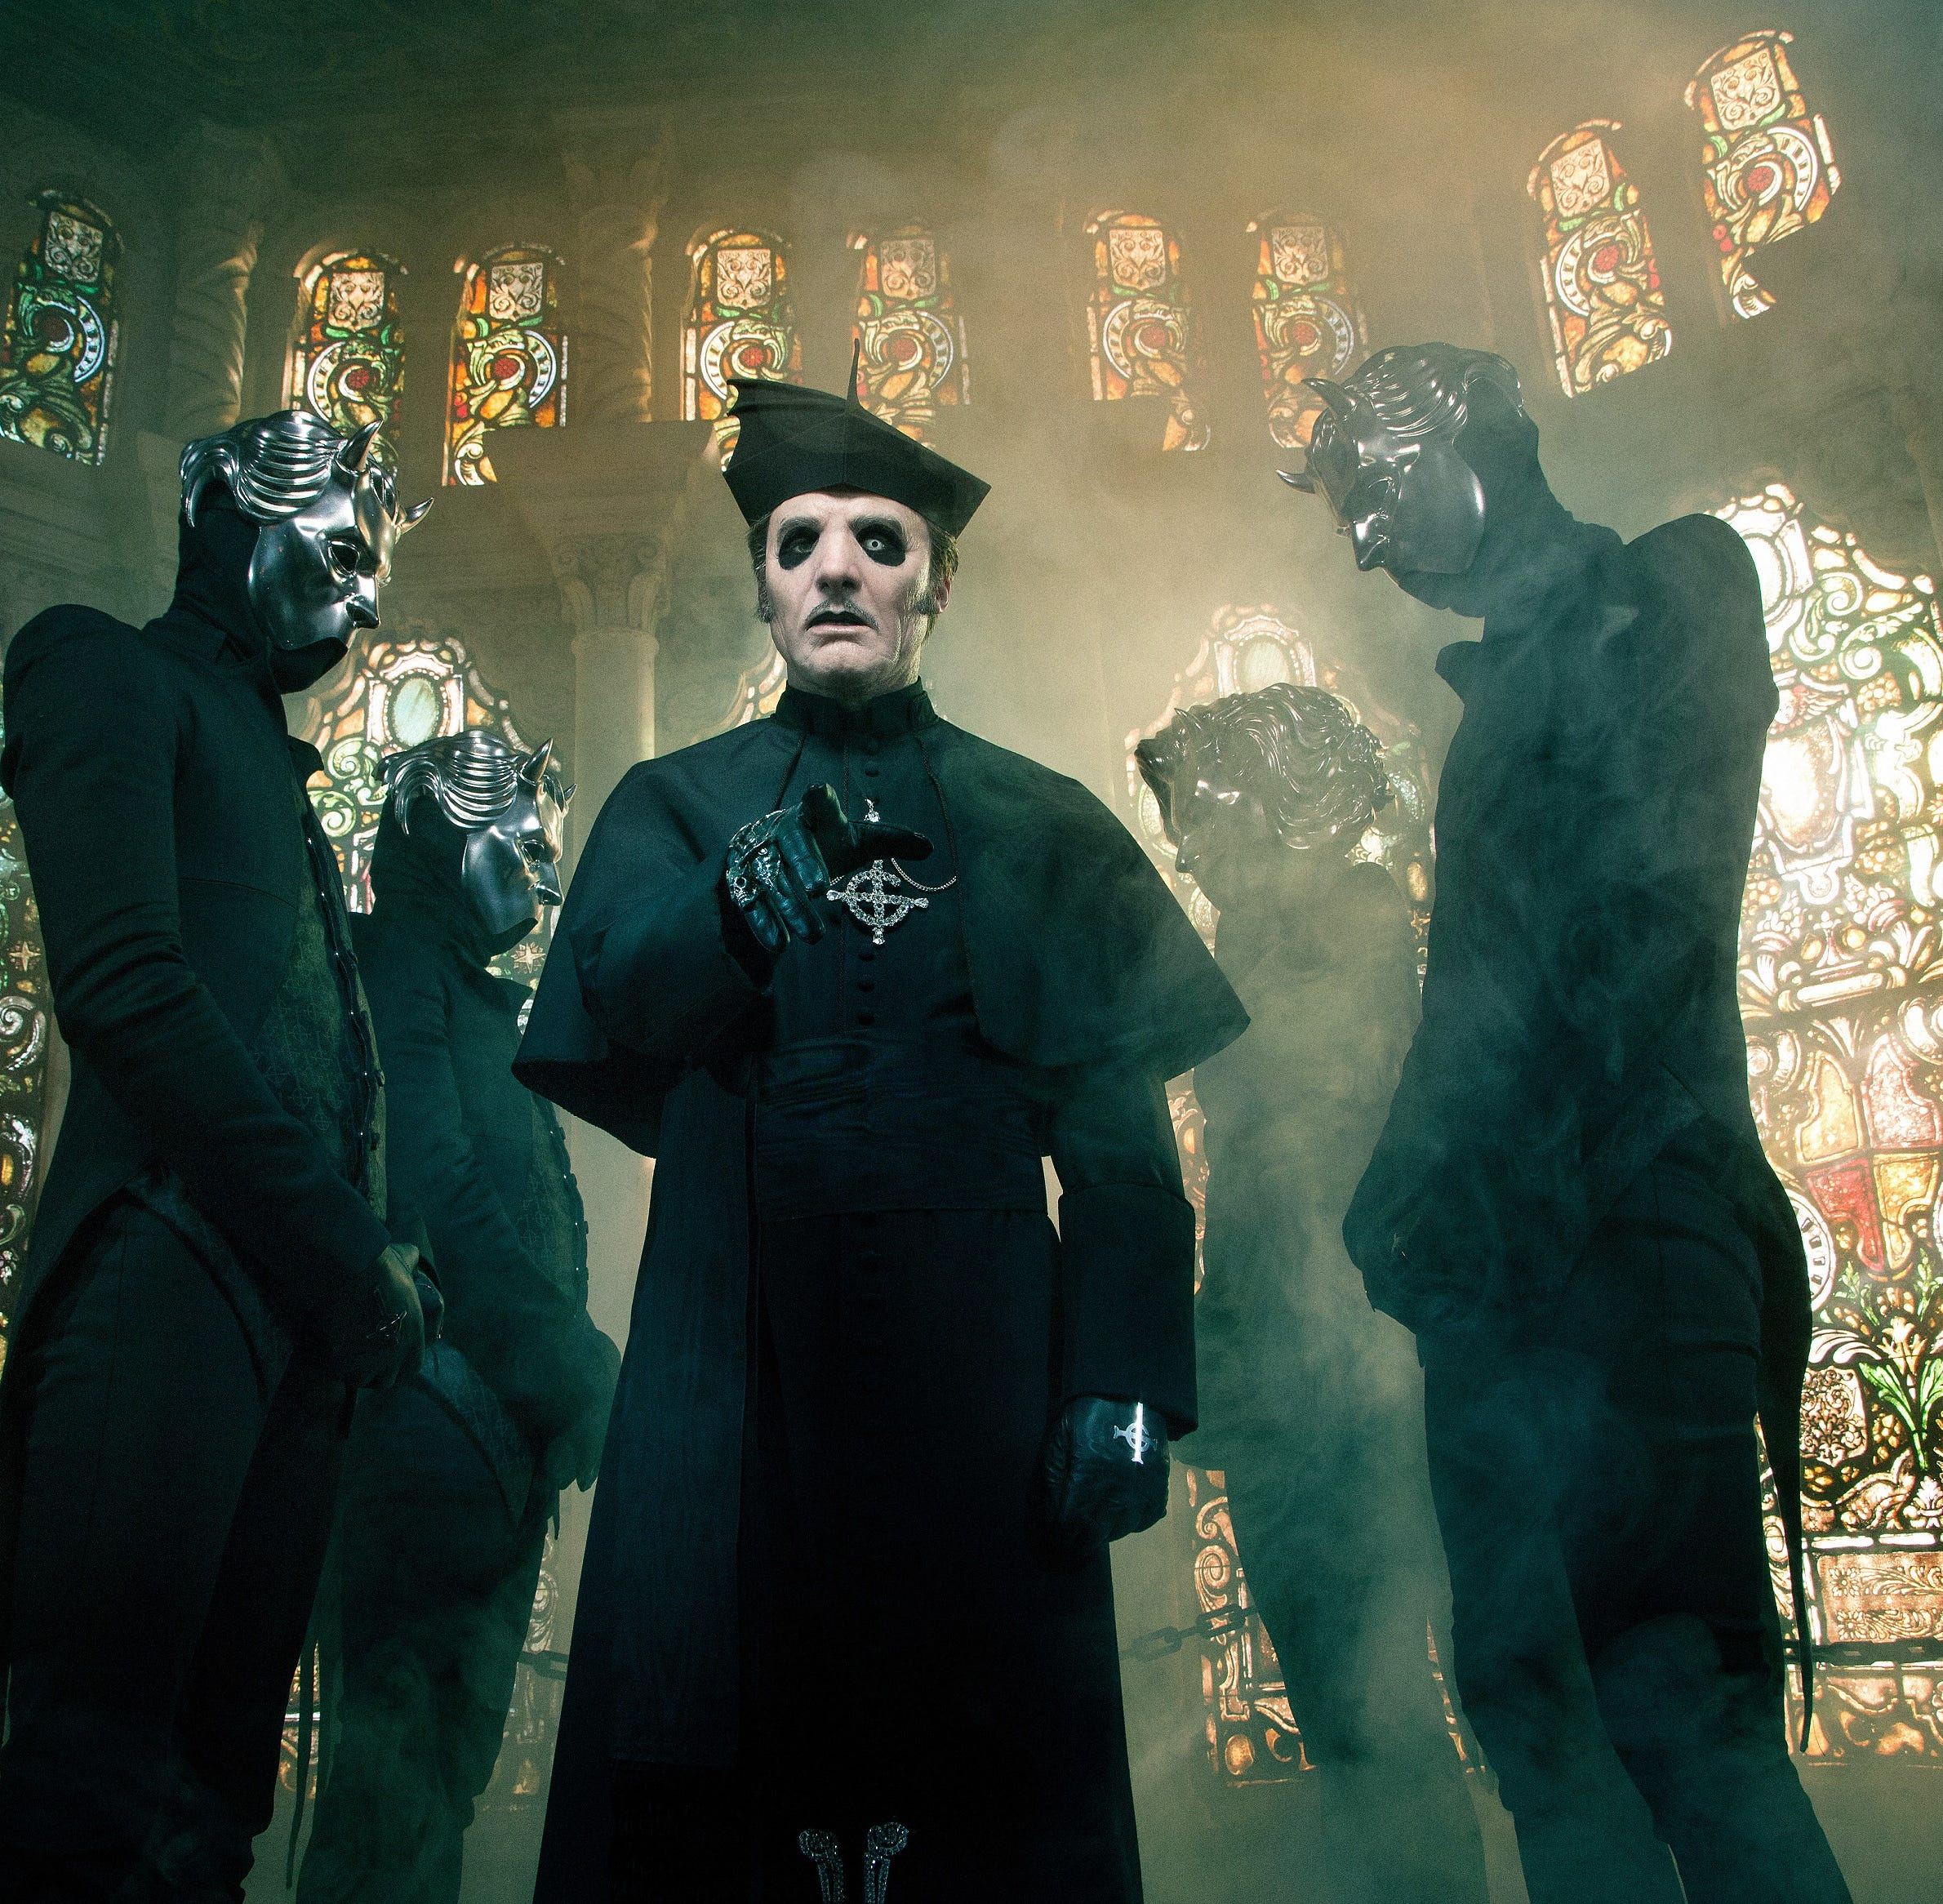 Swedish rock band Ghost coming to Premier Center